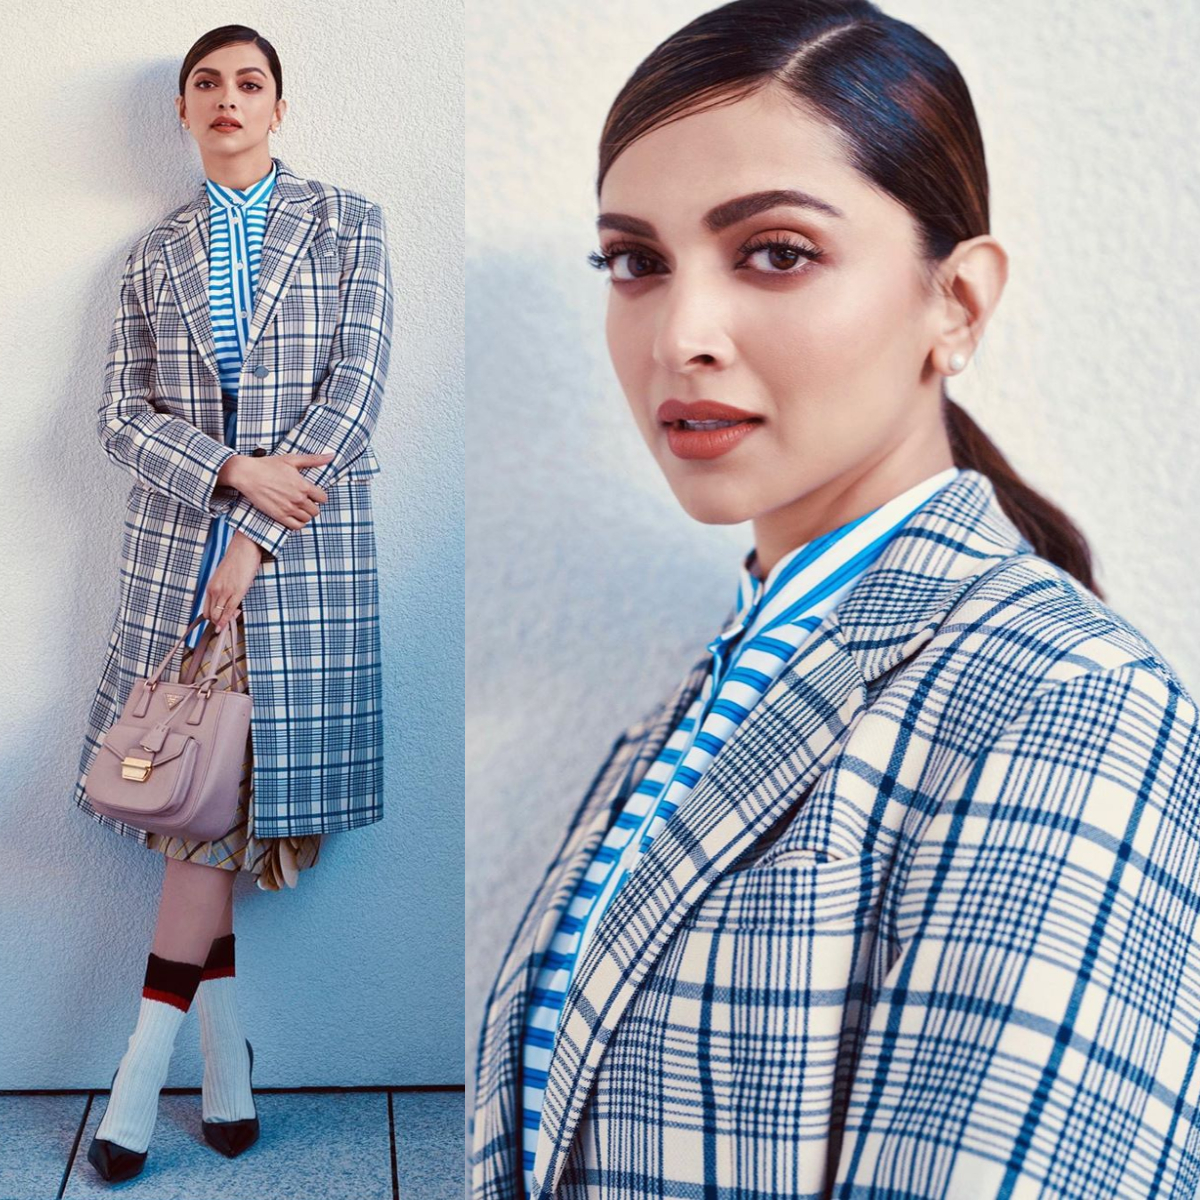 Deepika Padukone is all about pairing together tricky patterns in head to toe Prada: Yay or Nay?